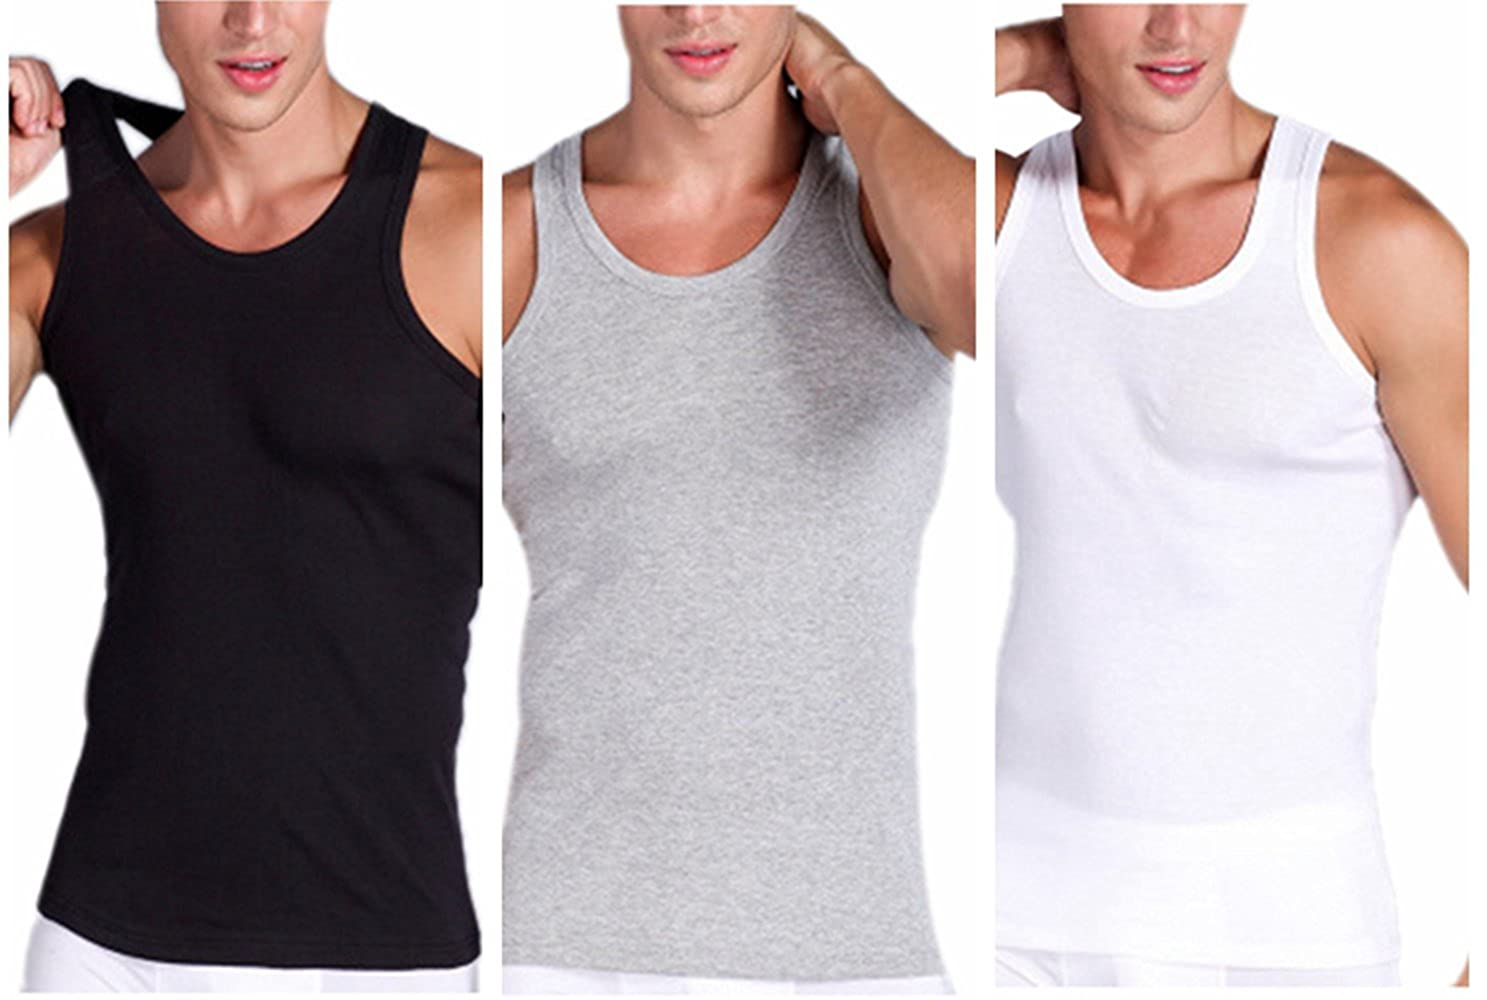 Discovery Men's Premium Cotton Super Value A-Shirt Multipack Undershirts Athletic Tank Tops Sleeveless